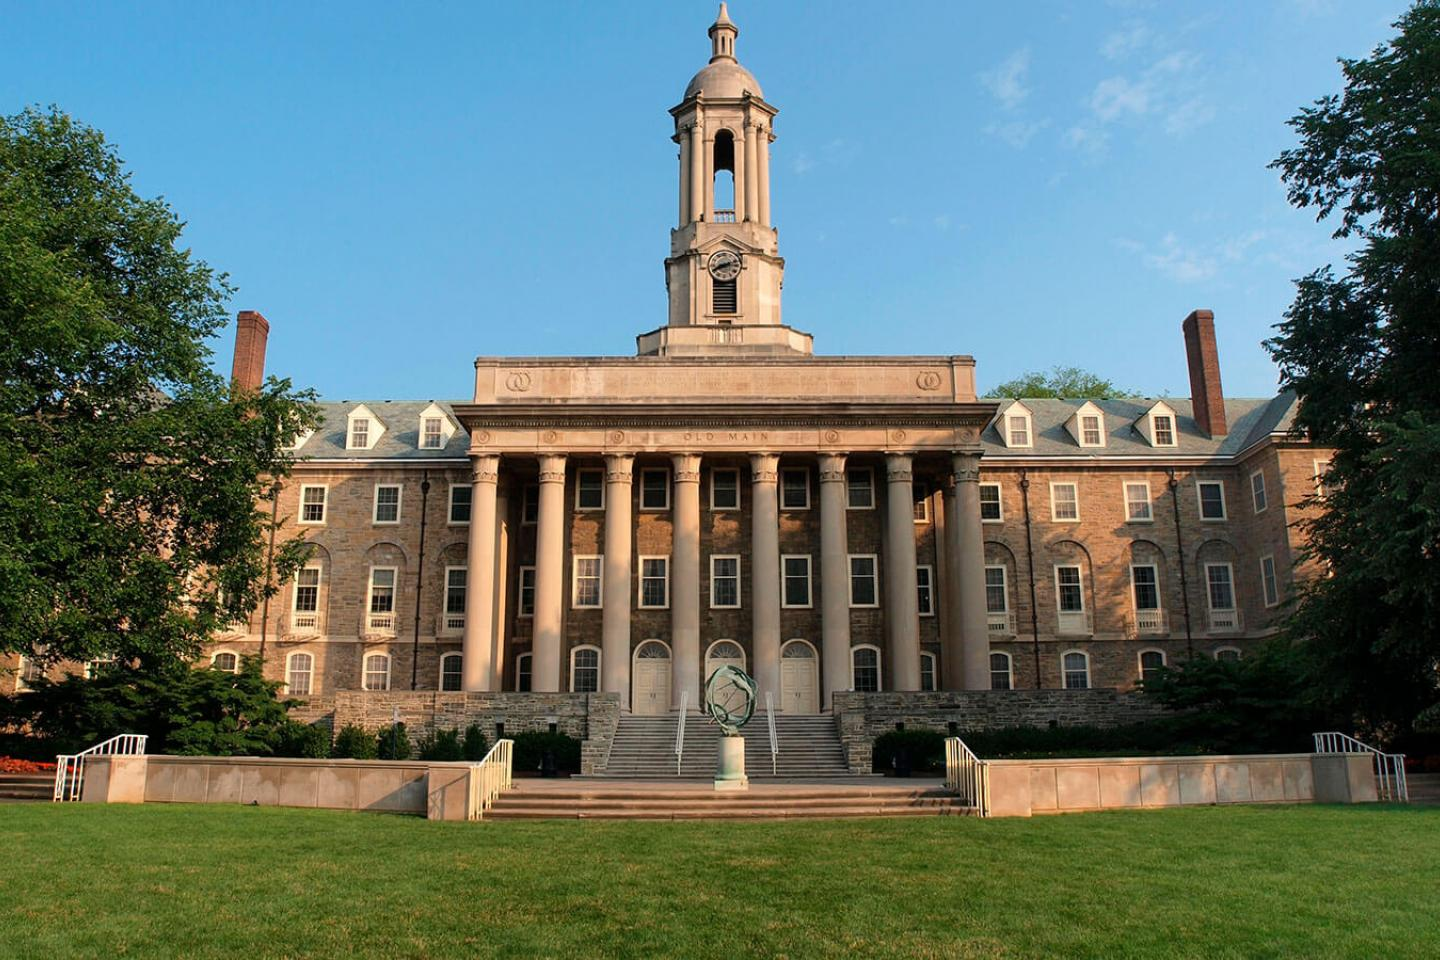 https://www.cappex.com/colleges/penn-state-university